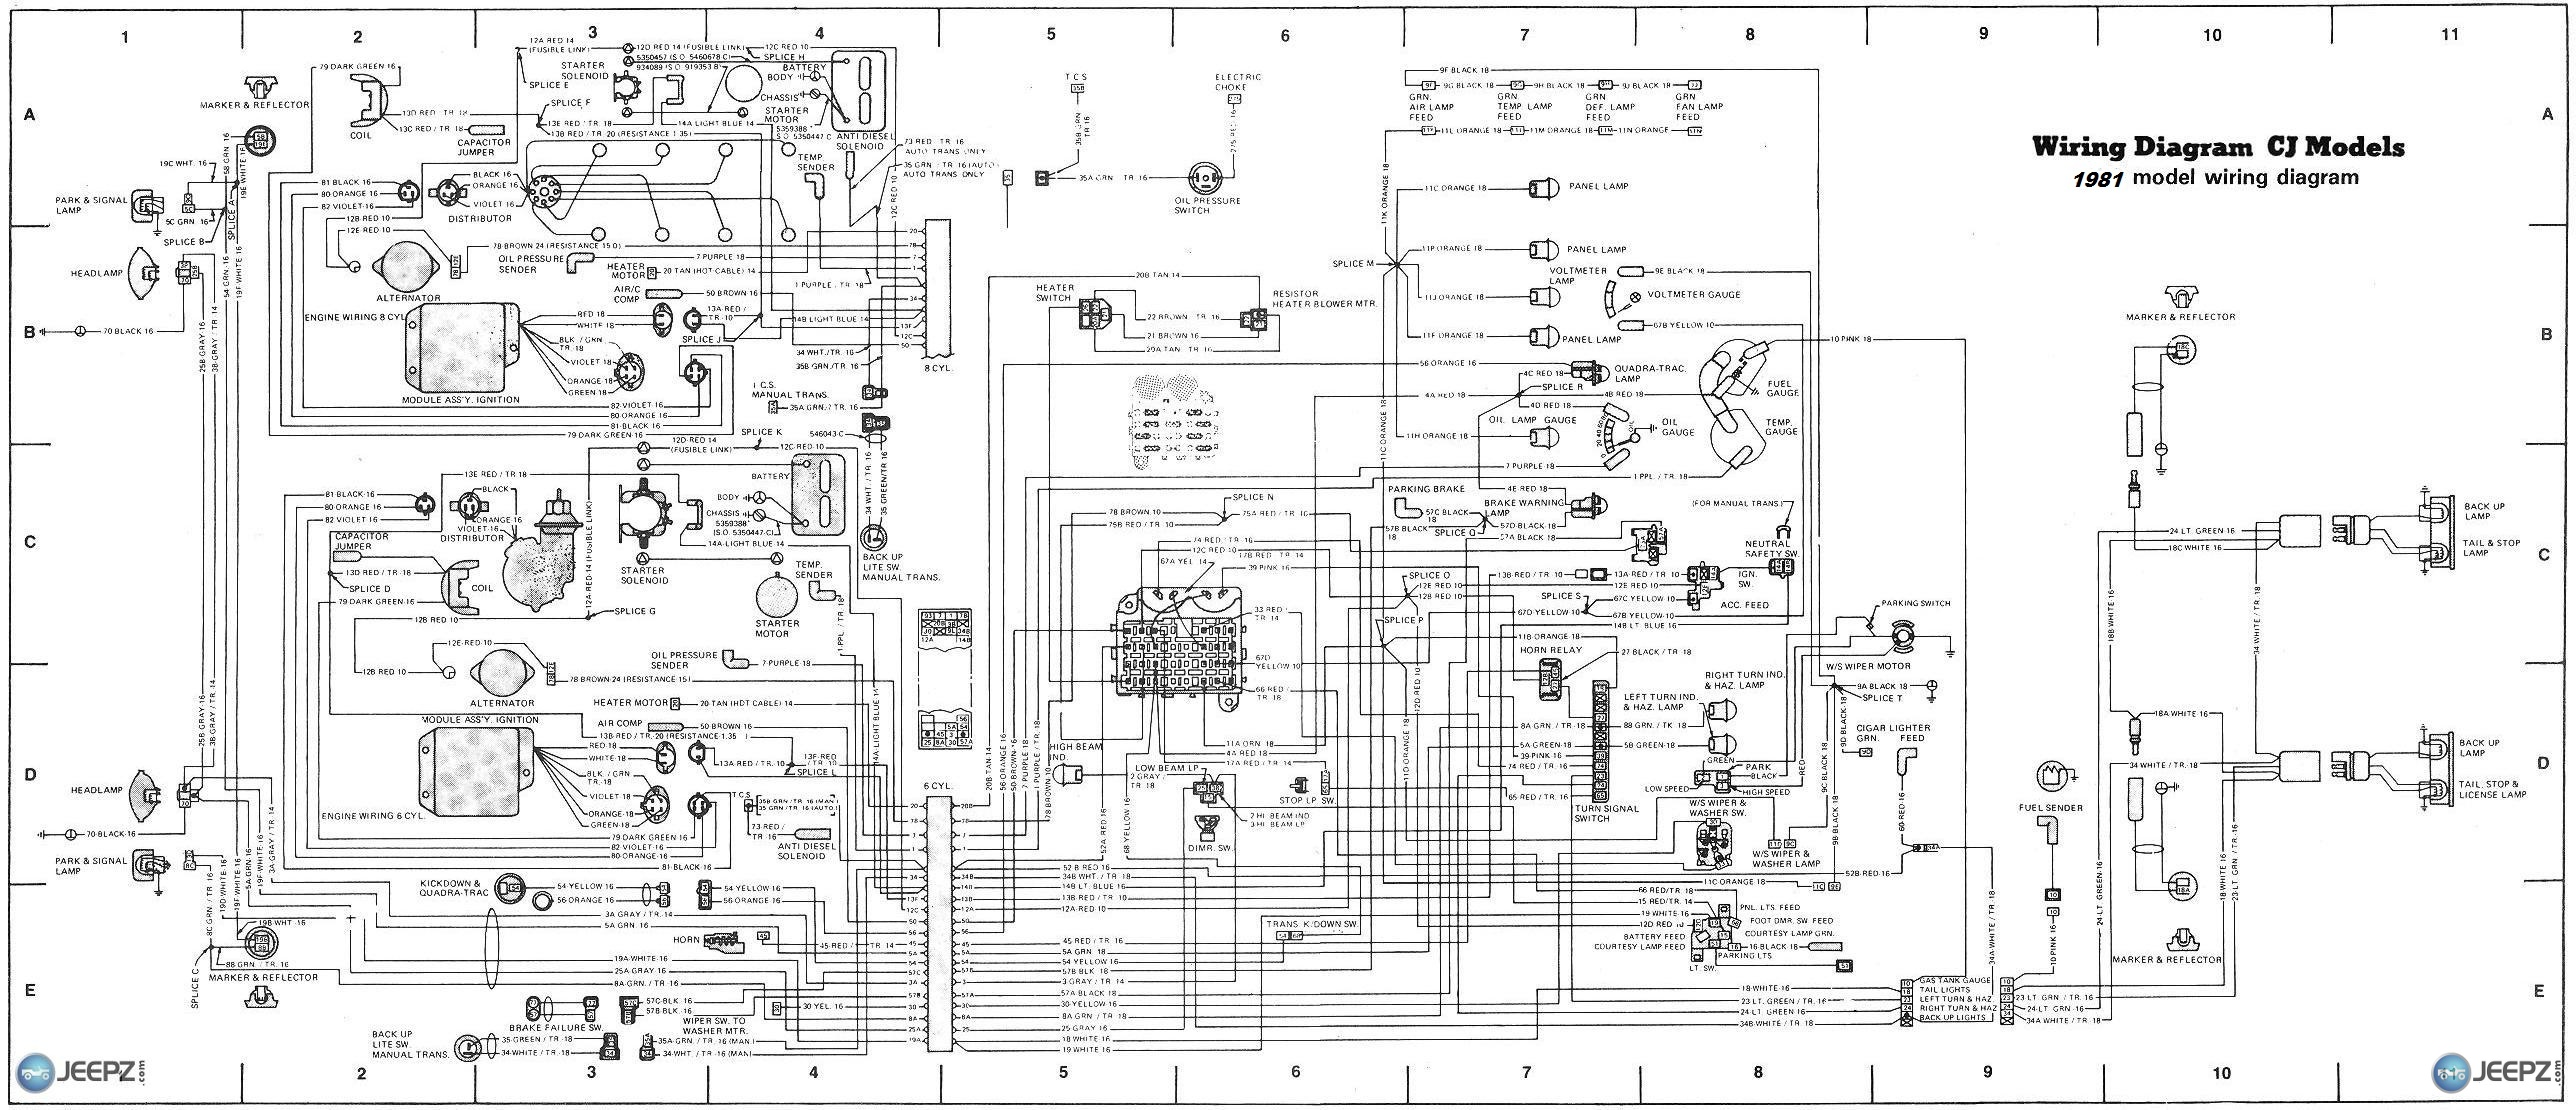 1976 corvette radio wiring diagram for led light bar with relay cj-7 wire